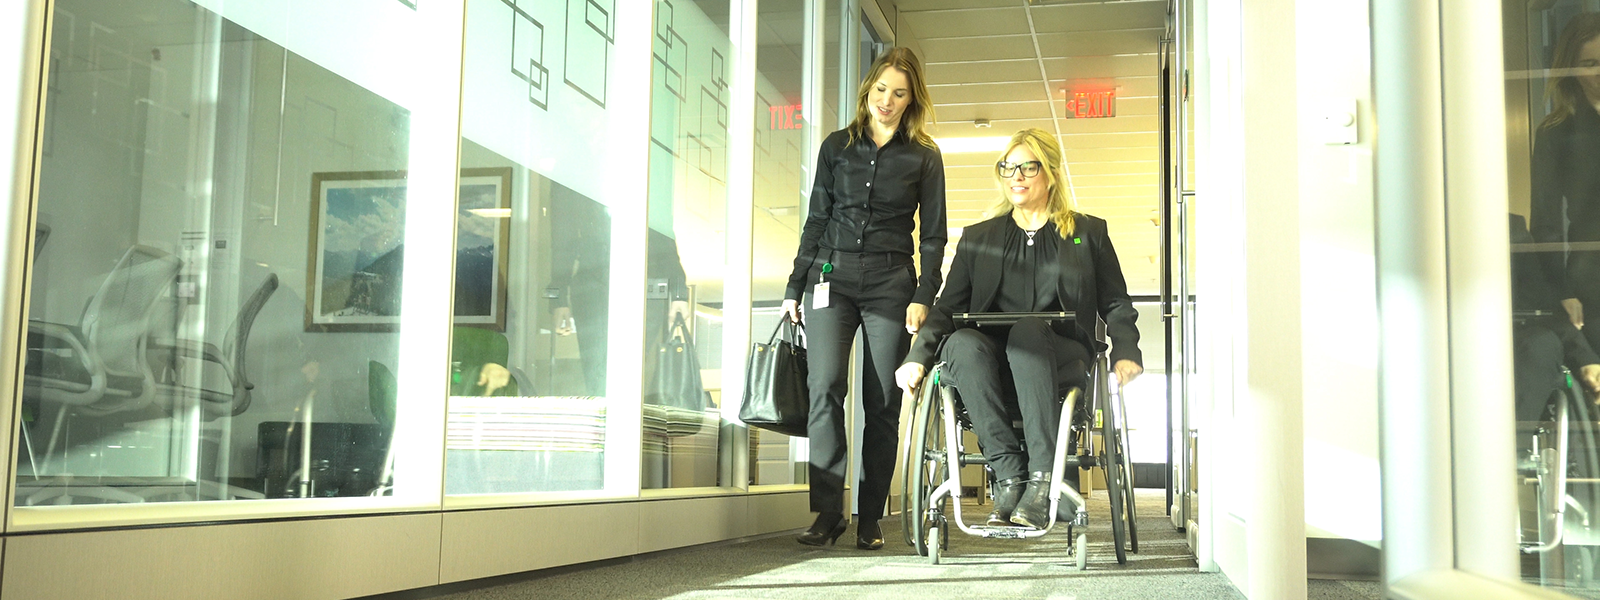 Image of two workers chatting in an accessible workplace hallway, one standing, the other from a wheelchair.